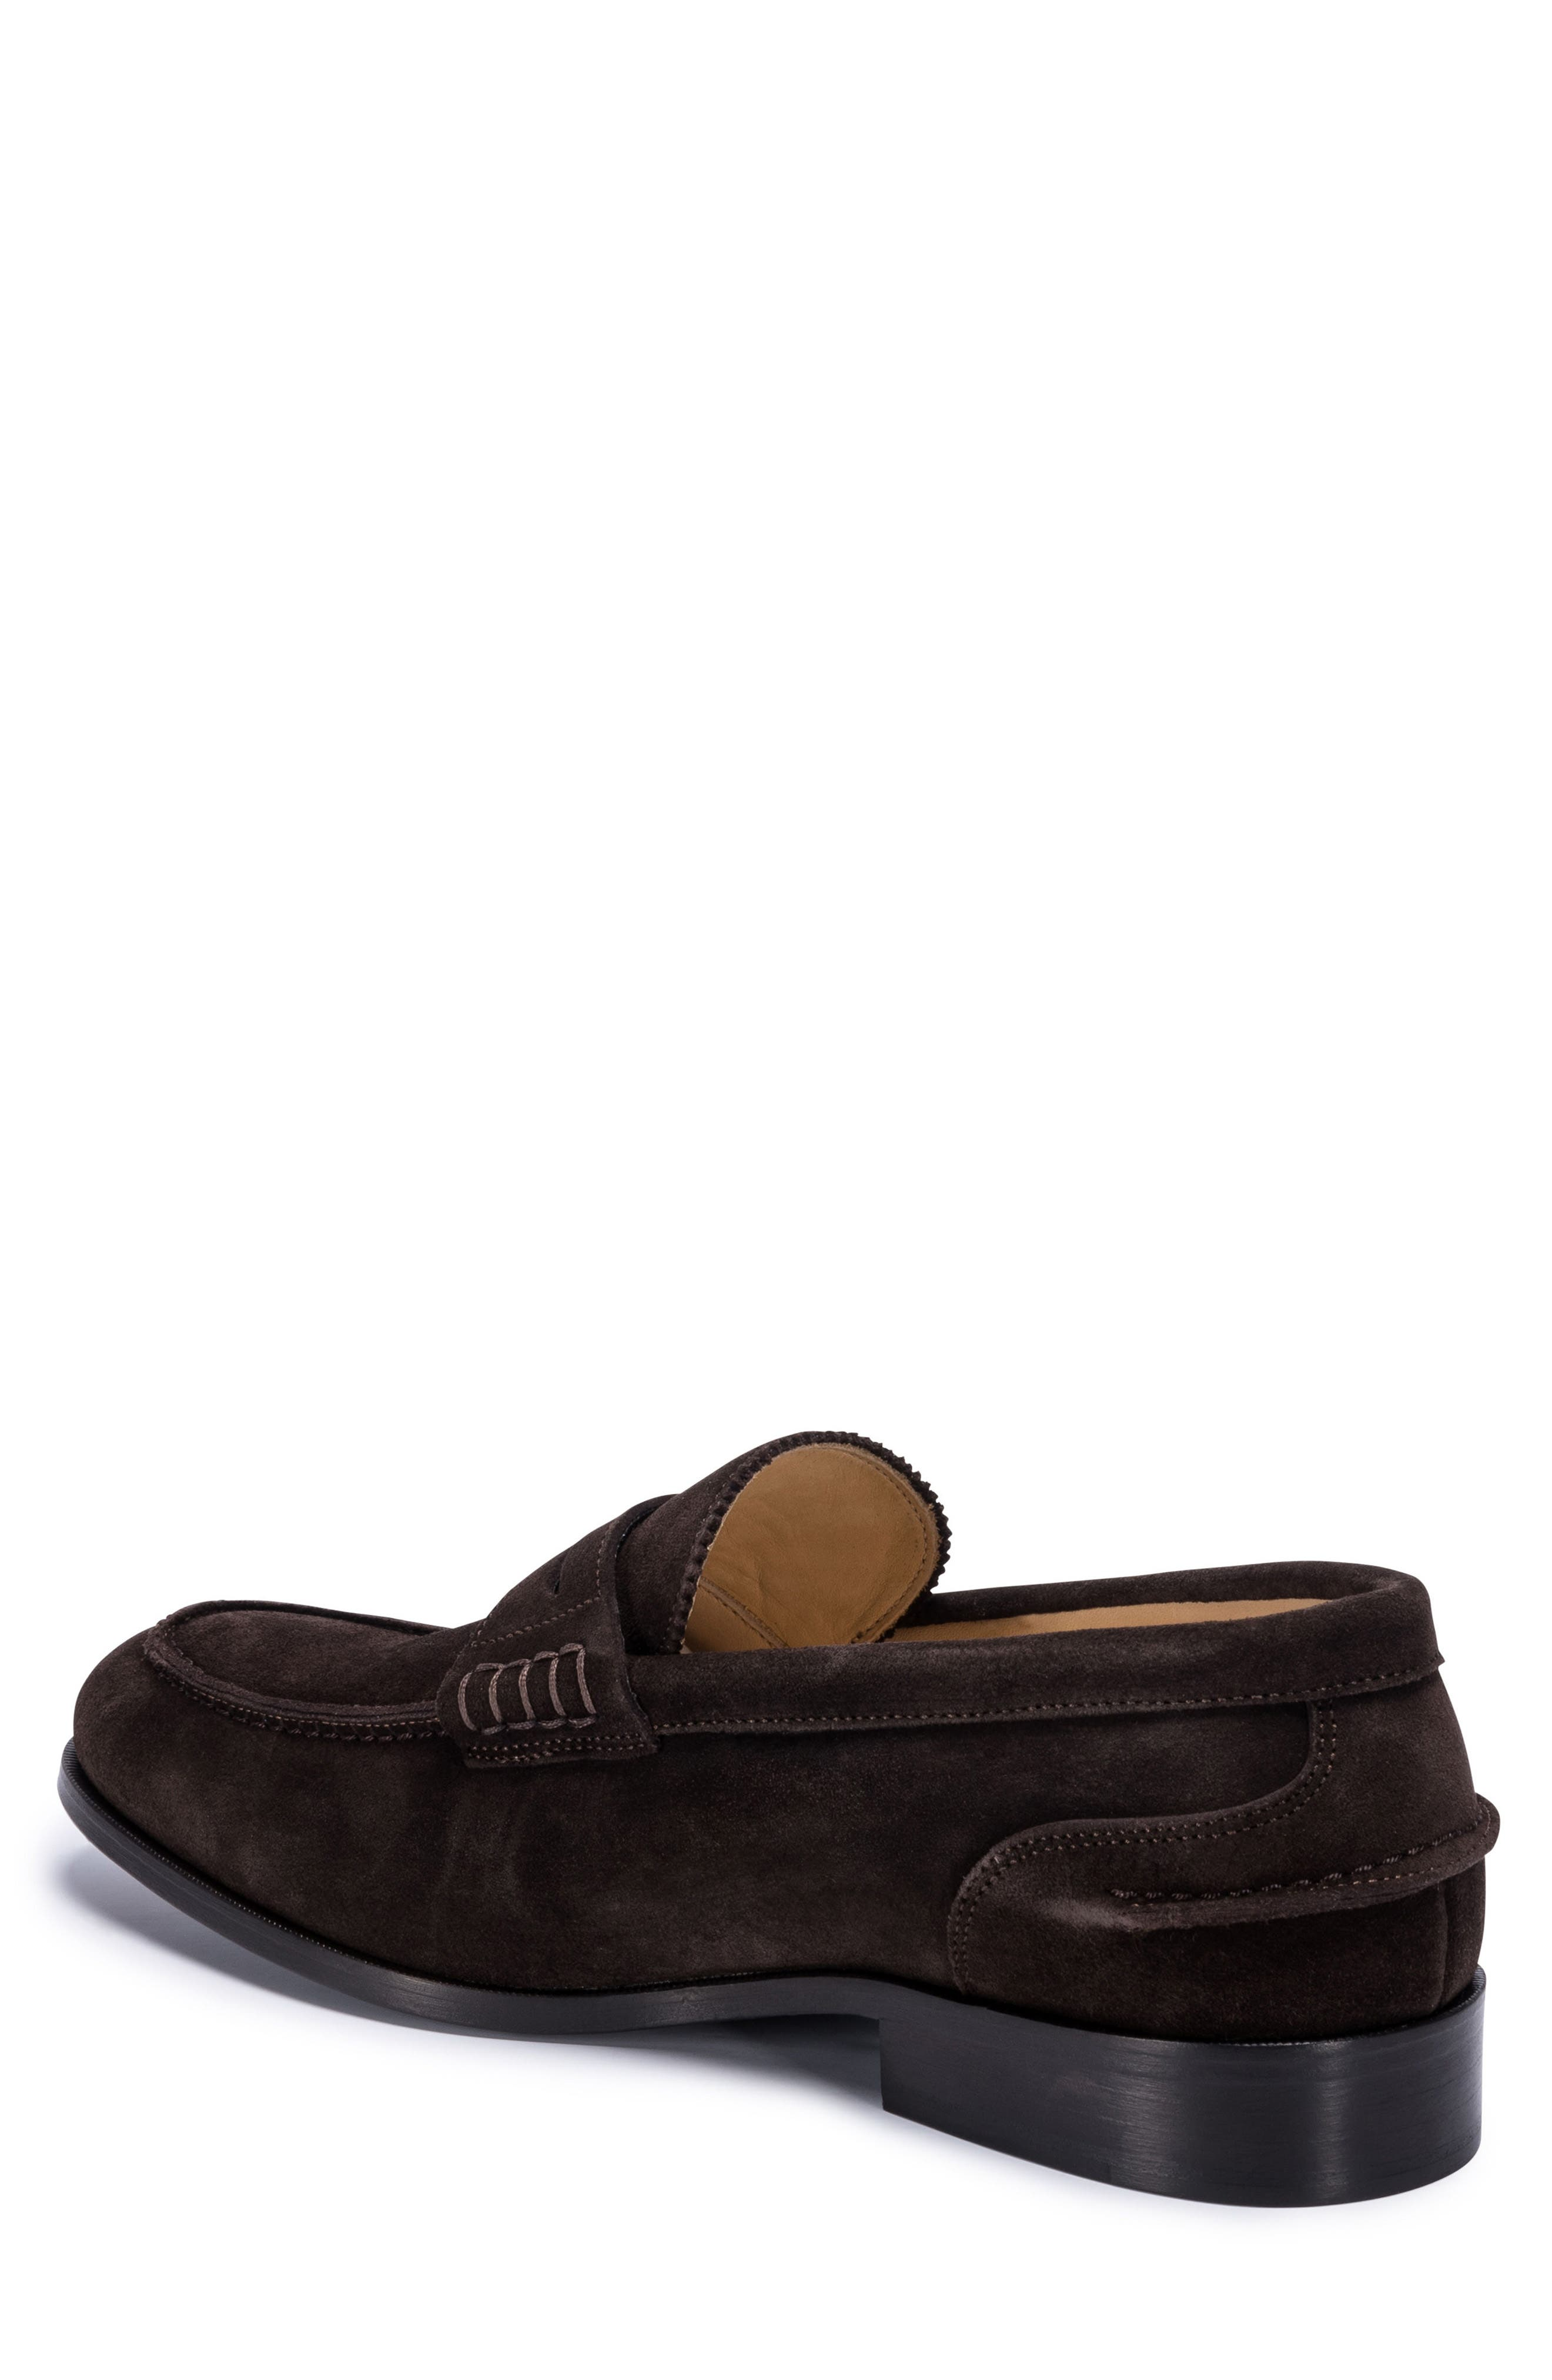 Torino Penny Loafer,                             Alternate thumbnail 2, color,                             BROWN SUEDE